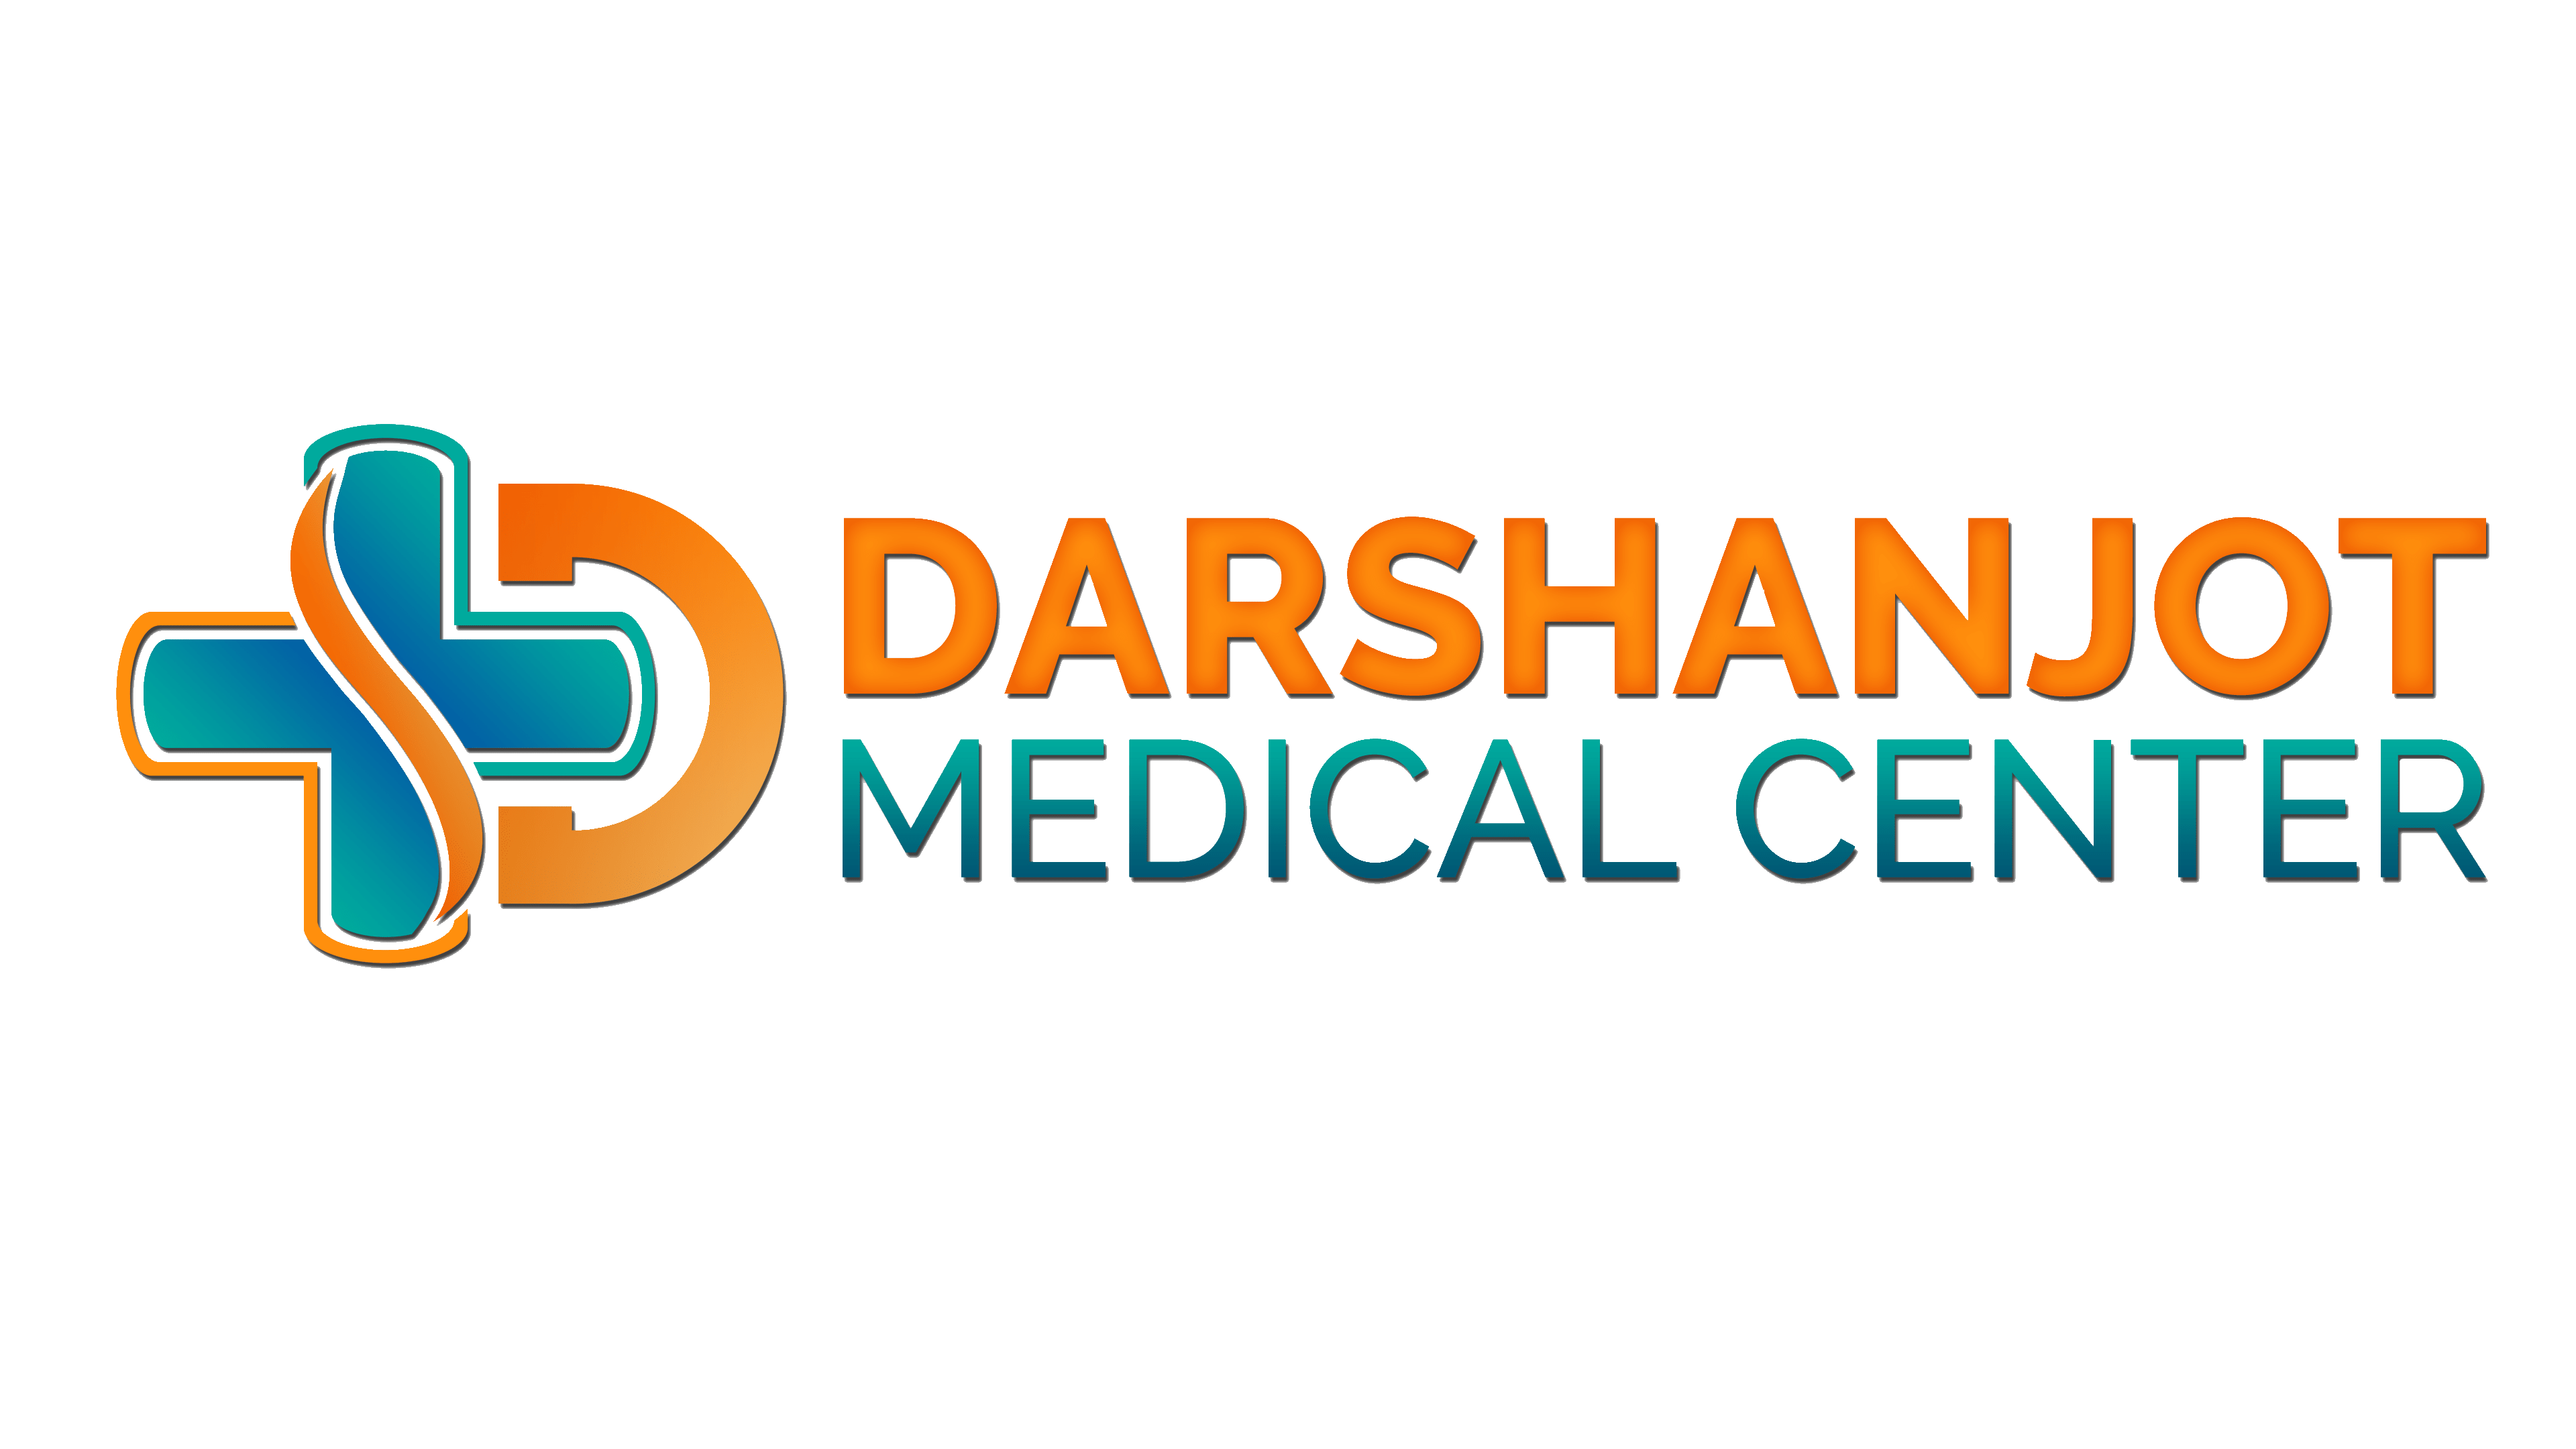 Darshanjot Medical and Health Center